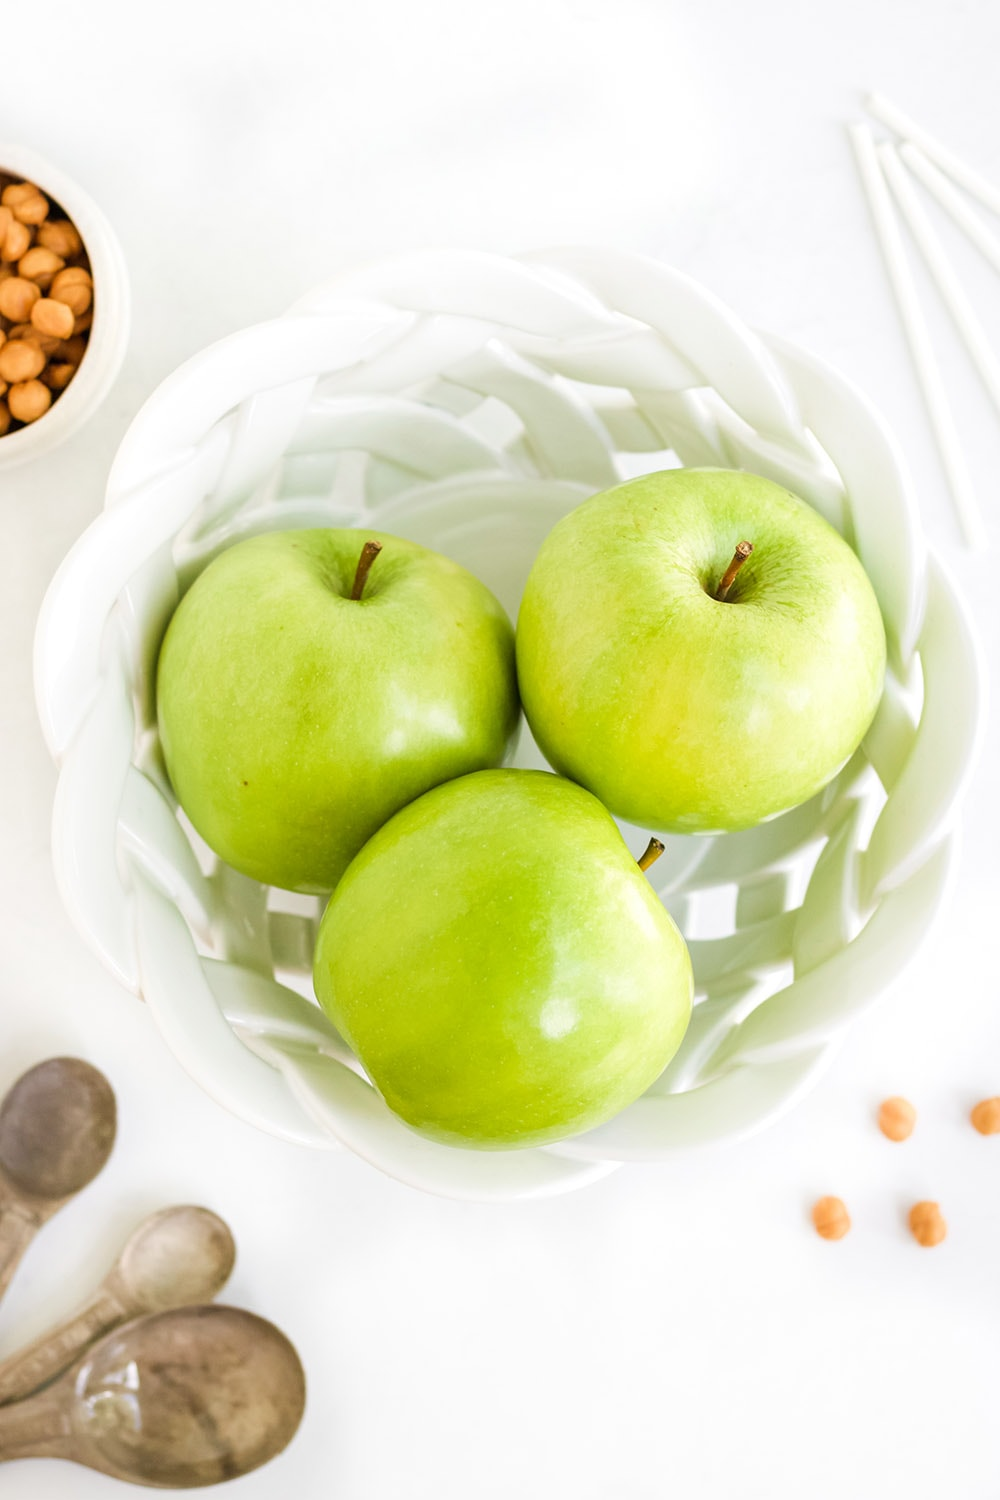 granny smith apples in a bowl